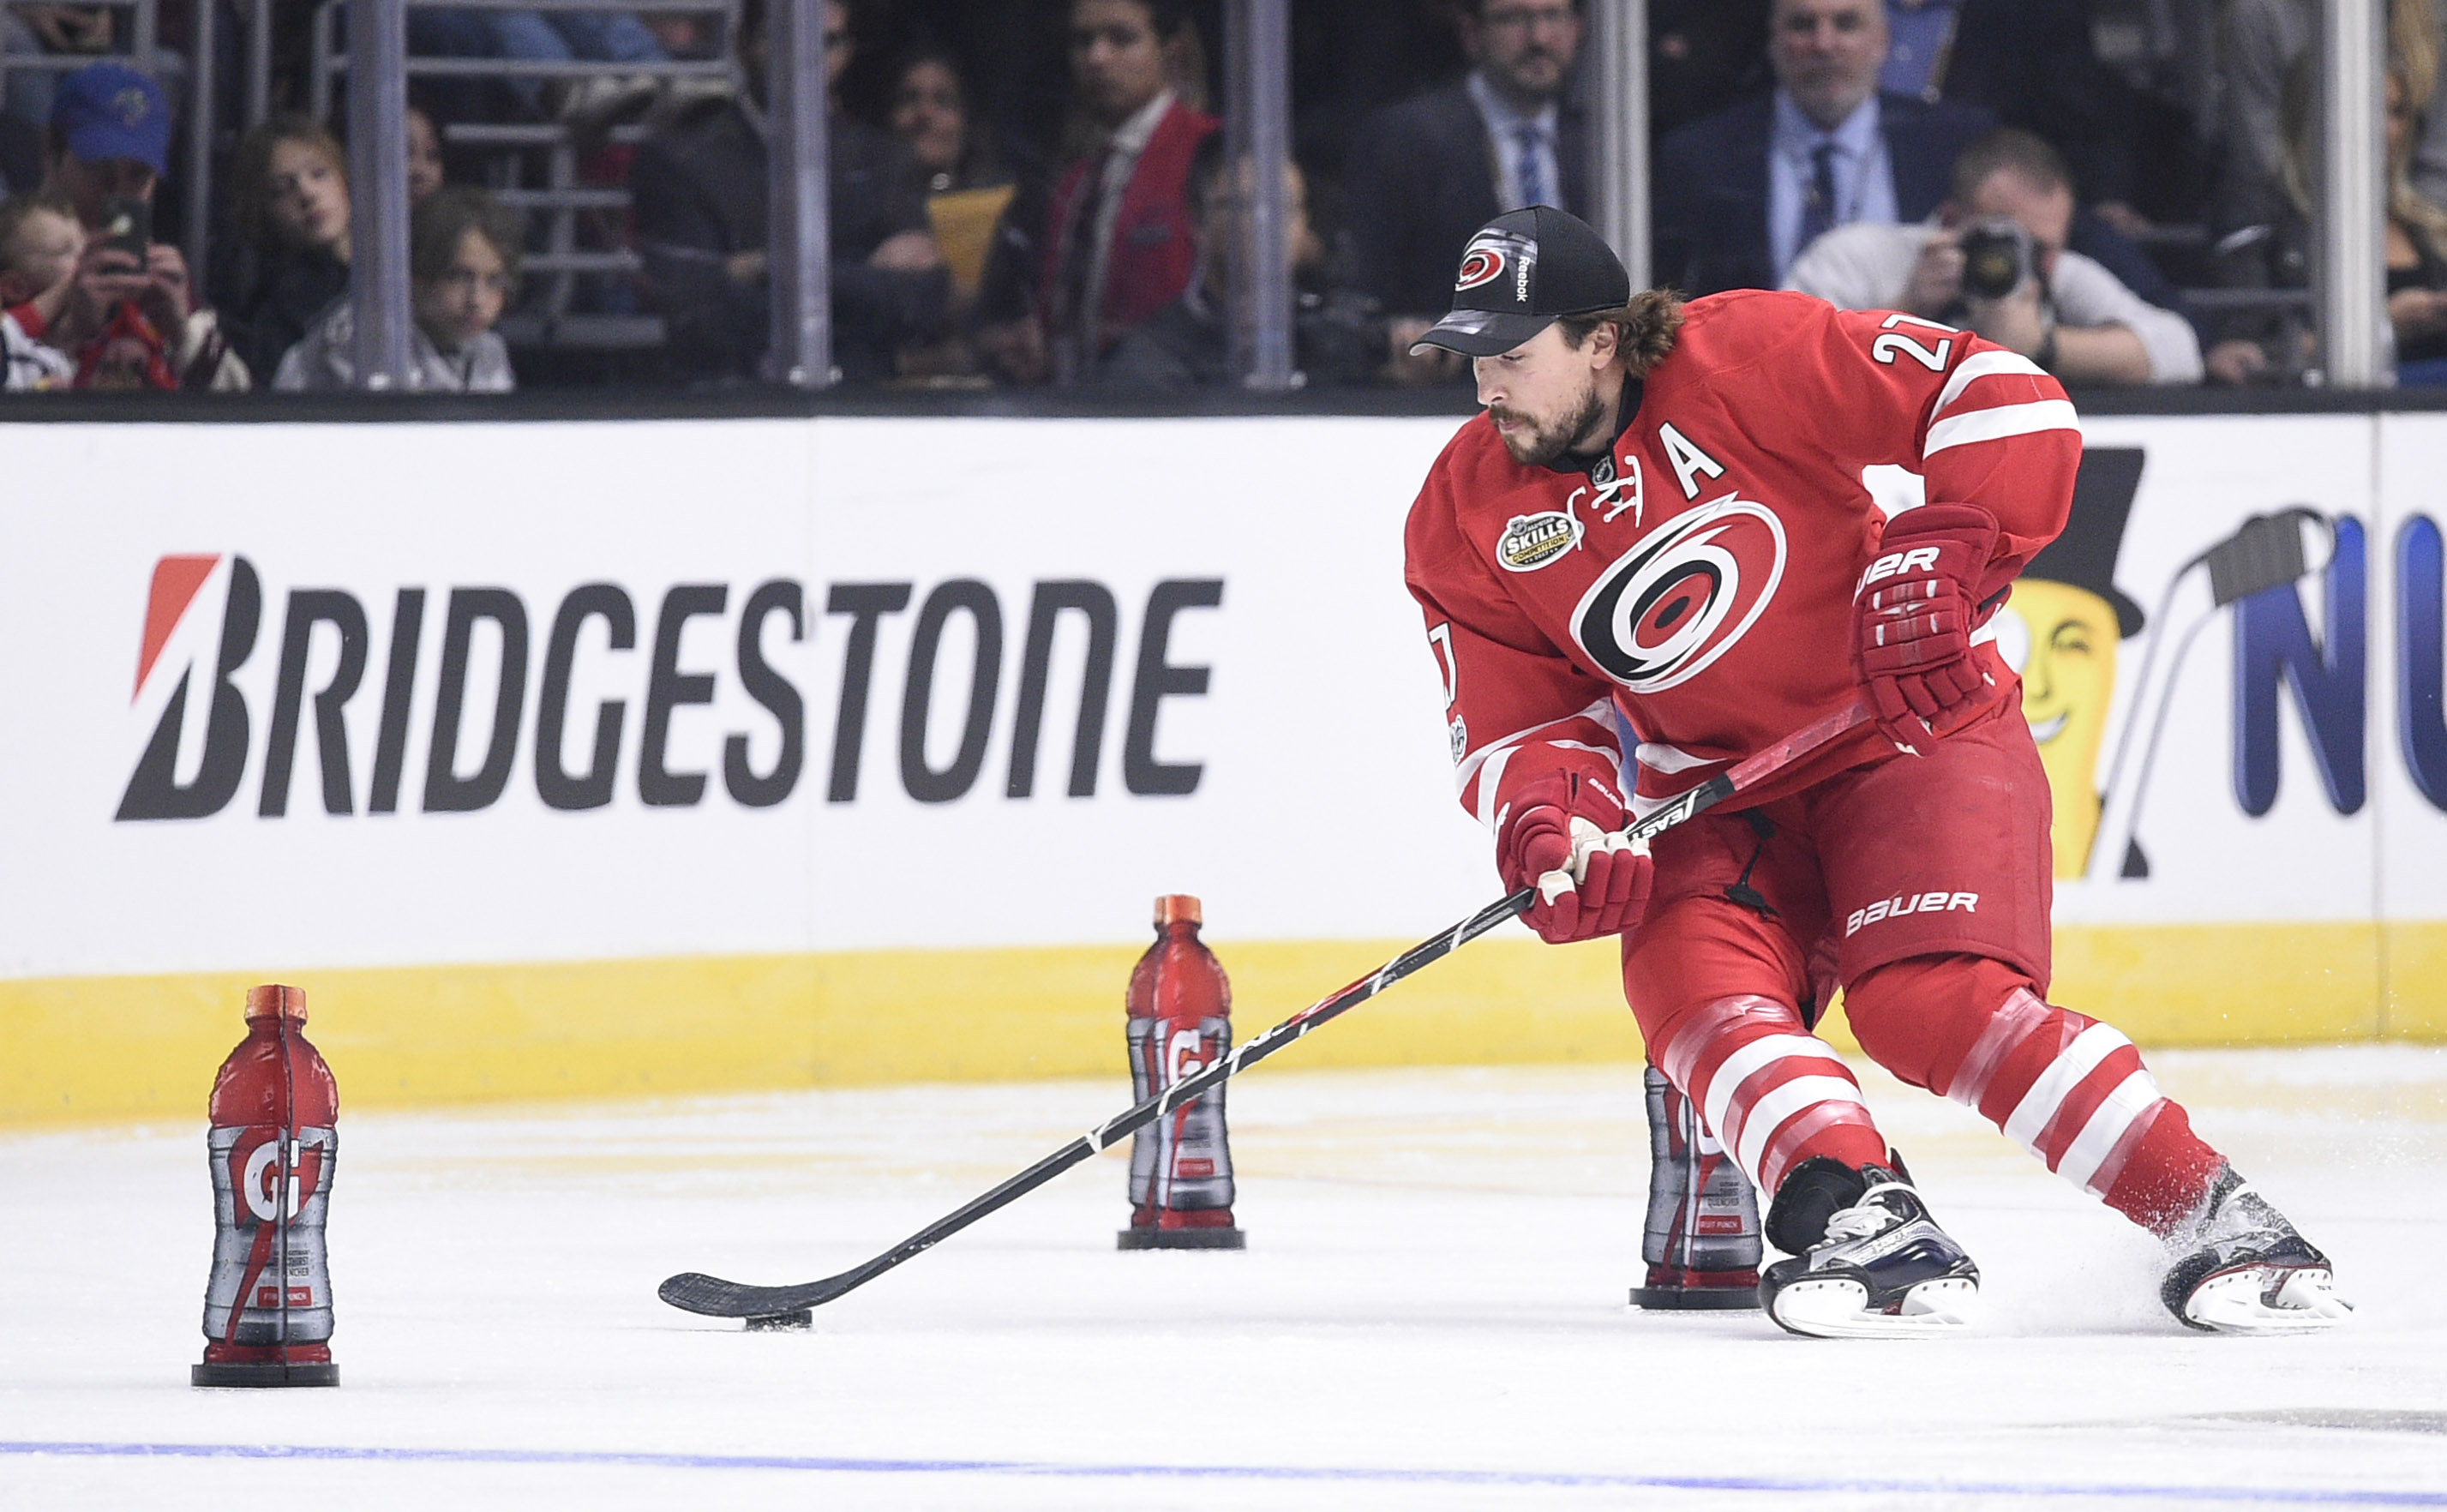 9844526-nhl-nhl-all-star-game-skills-competition